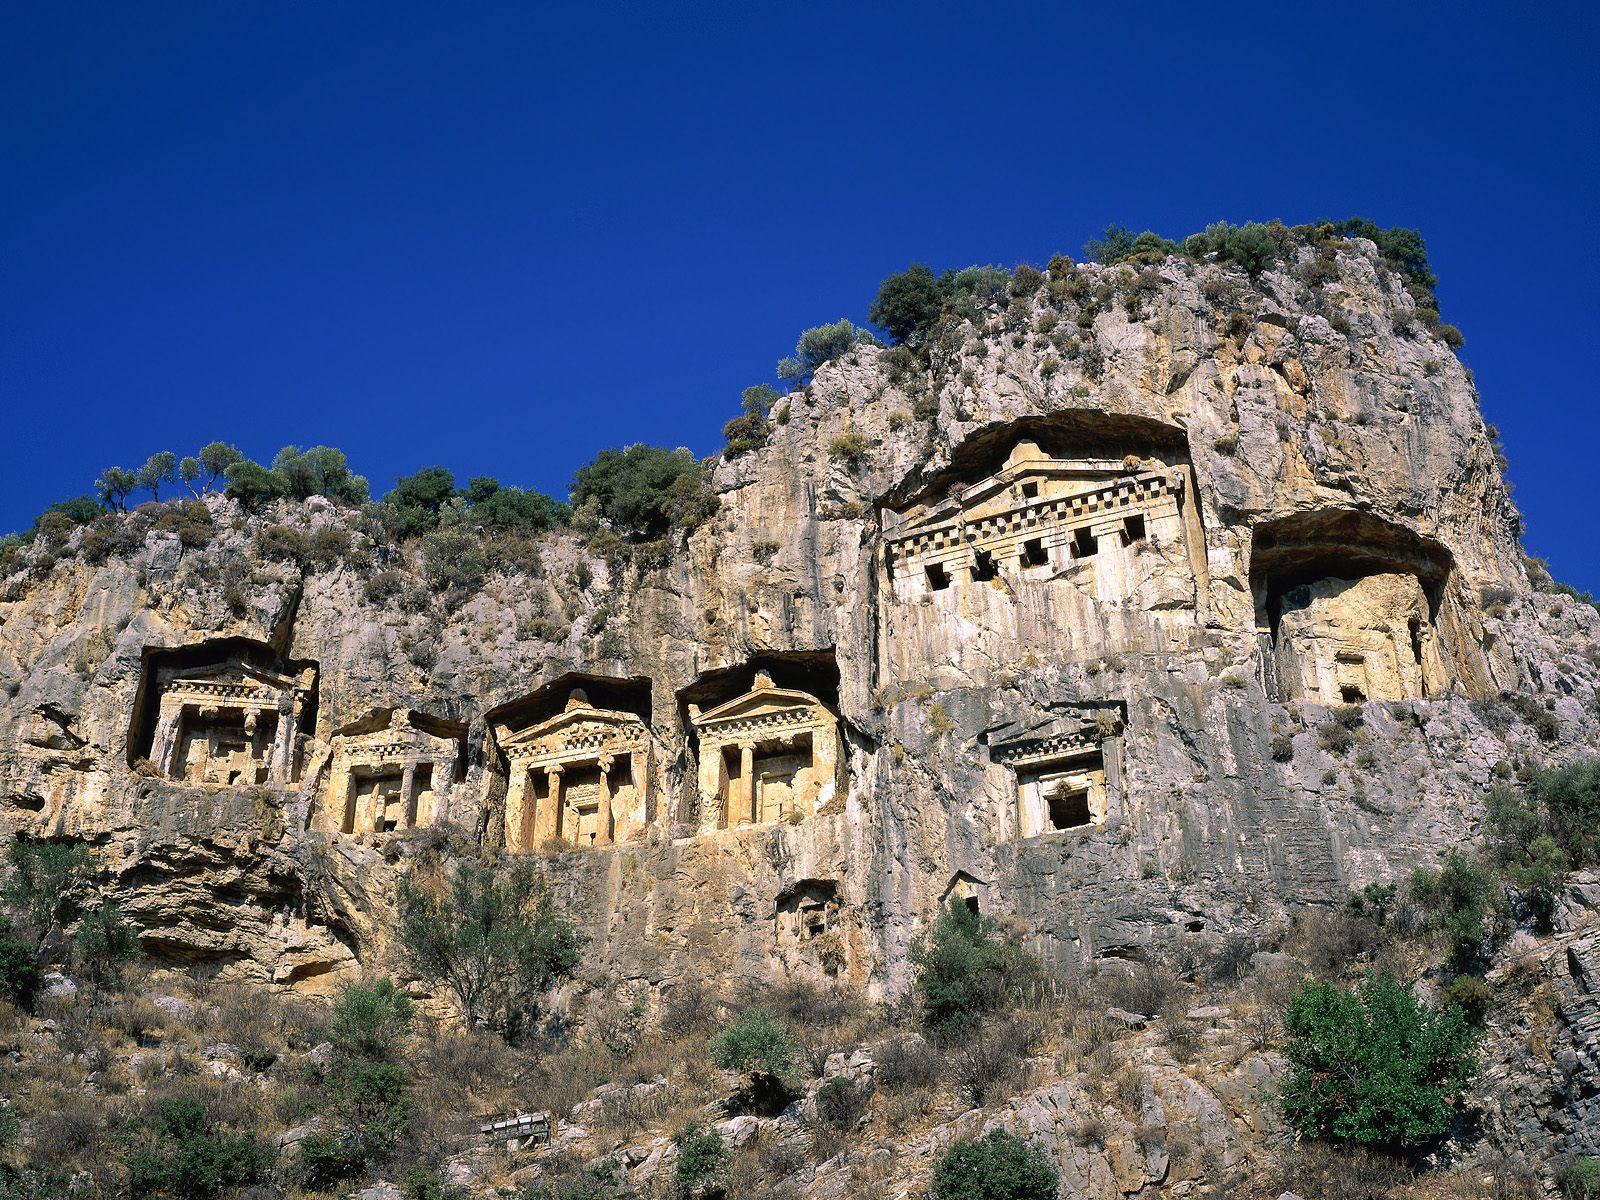 Turkey TA4/ON6ZK Tourist Attractions DX News